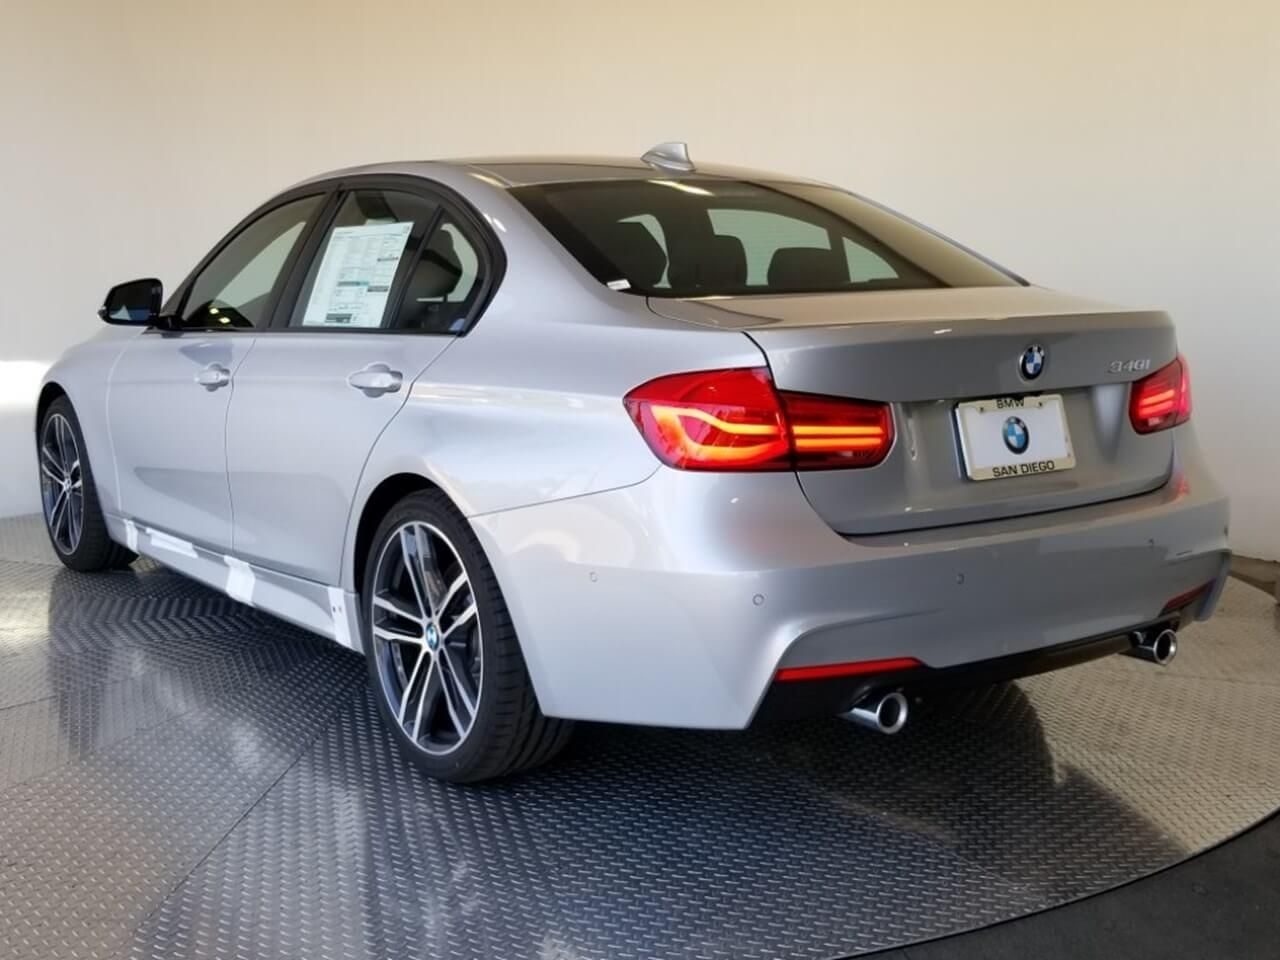 BMW 2020 BMW 340i For Sale In Baltimore MD 2020 BMW 340i